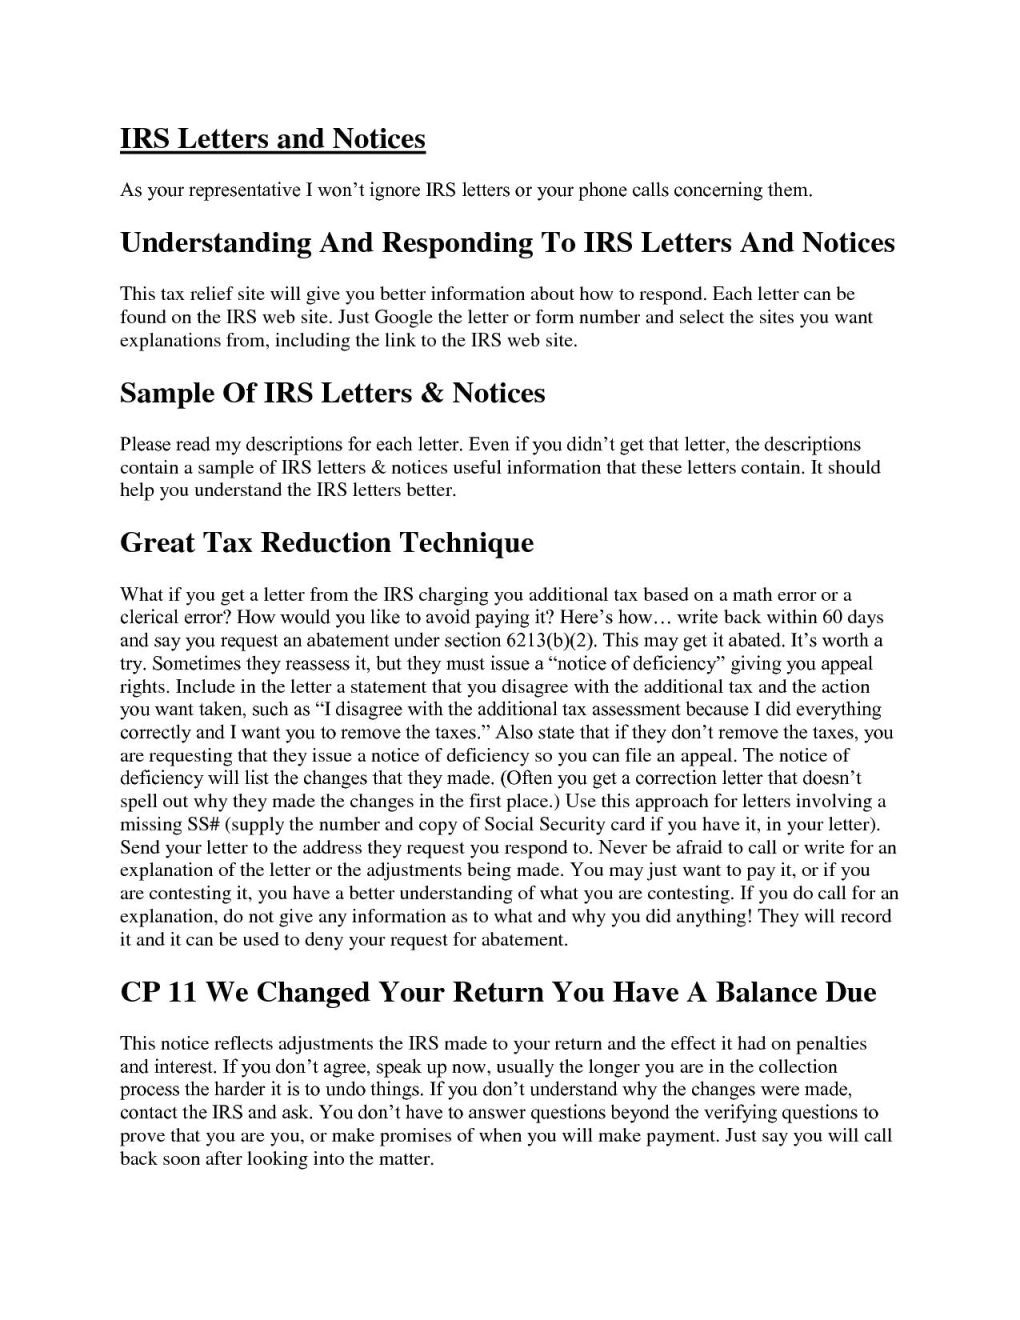 sample response letter to irs notice4